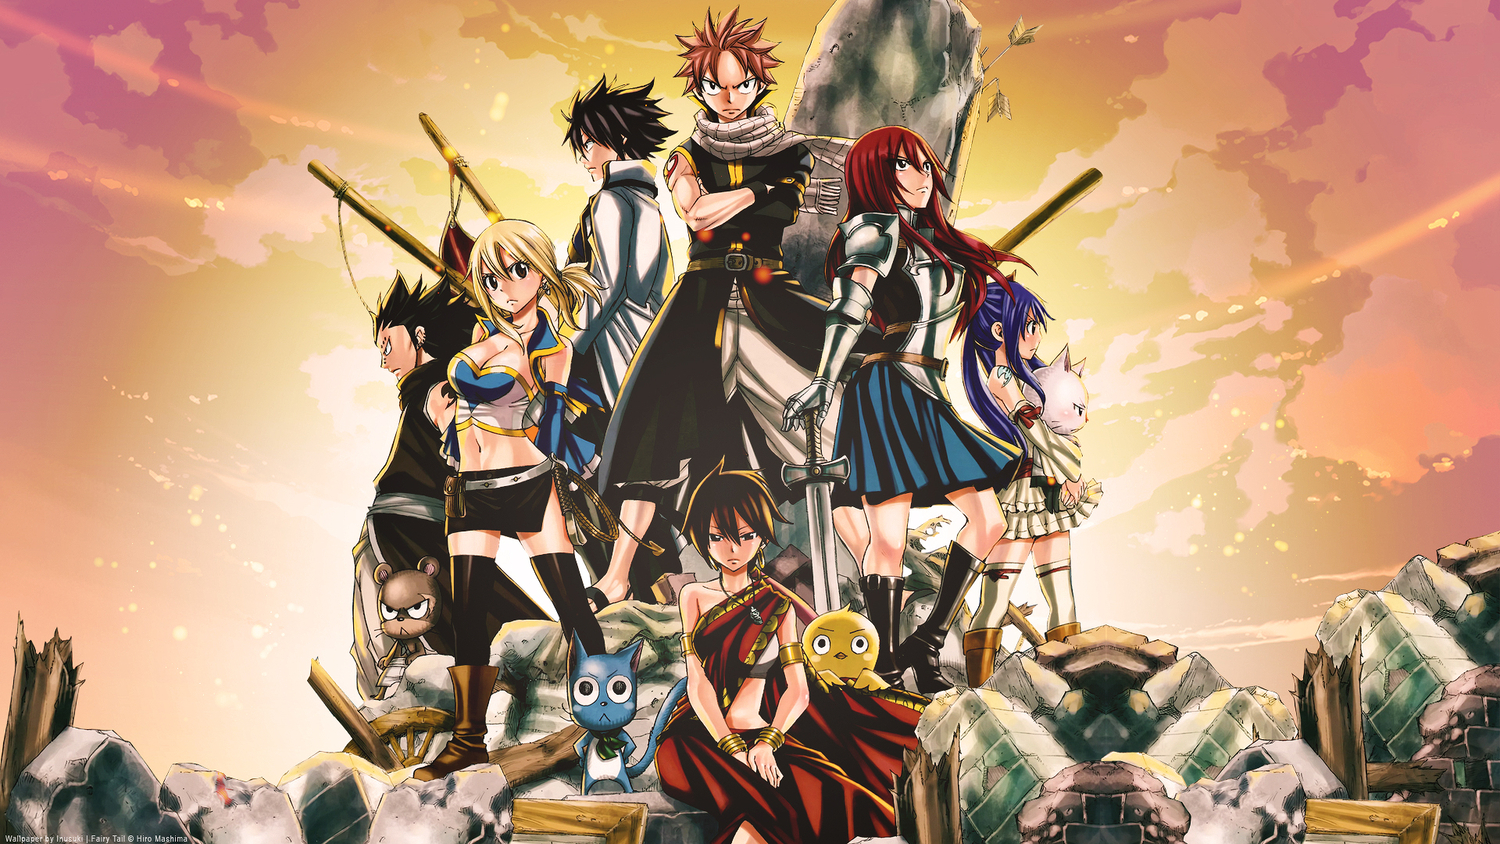 Fairy tail dating quiz for boys